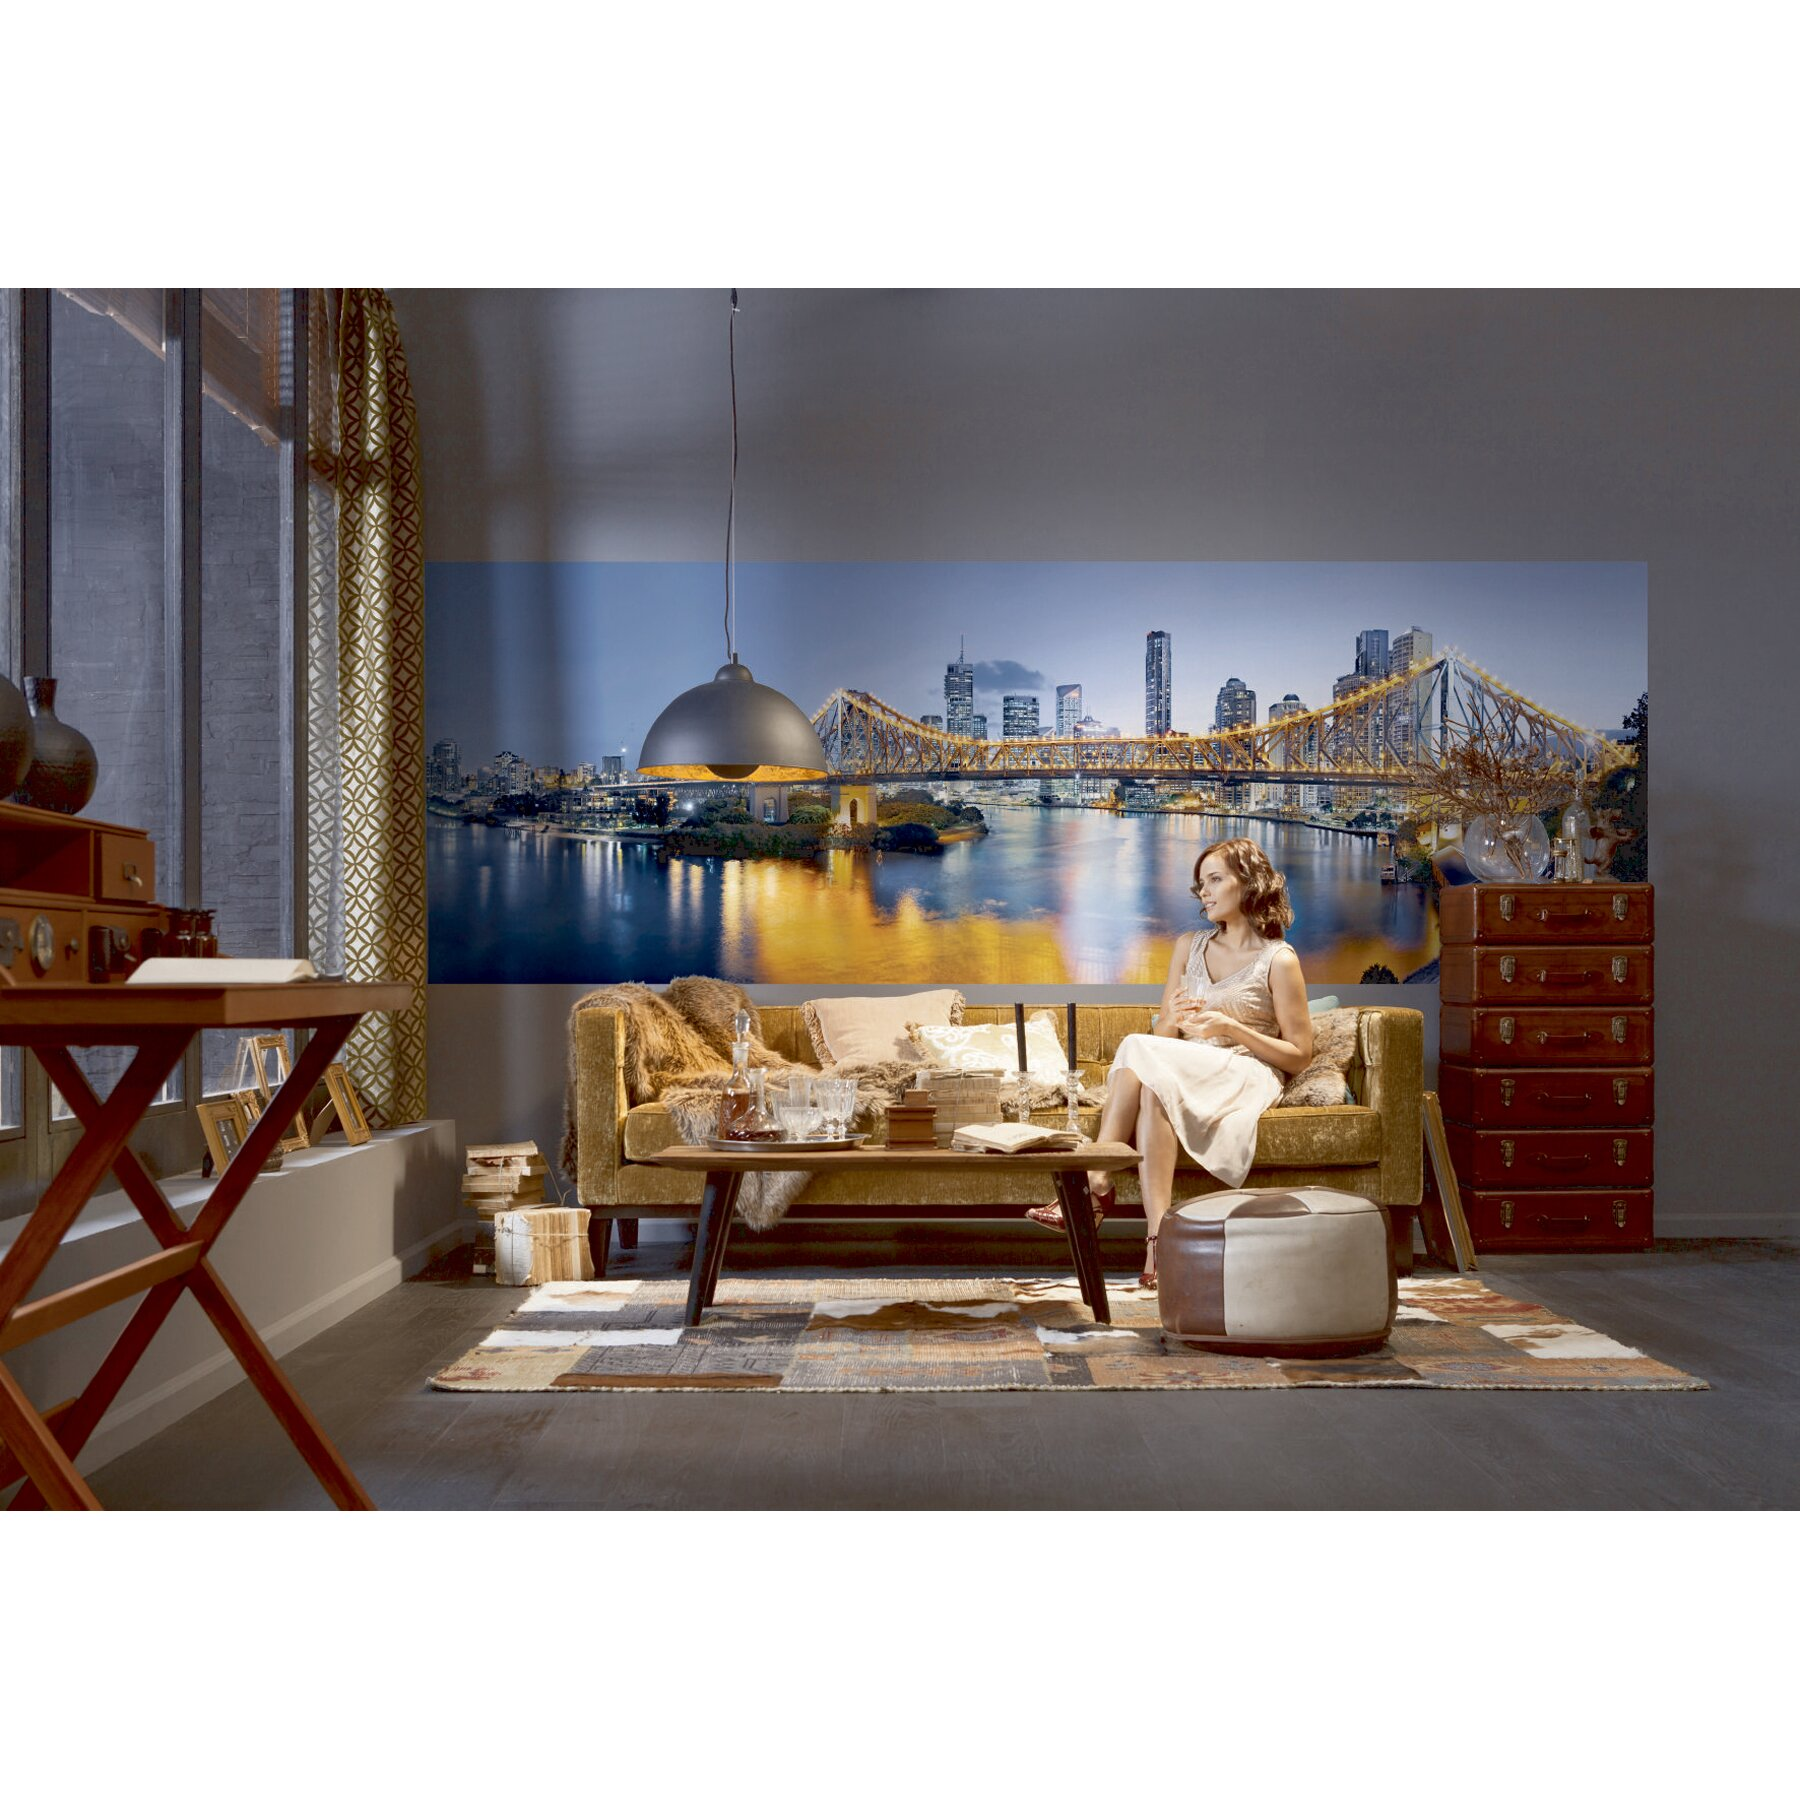 komar brisbane wall mural wayfair online sticker prices vinyl in brisbane